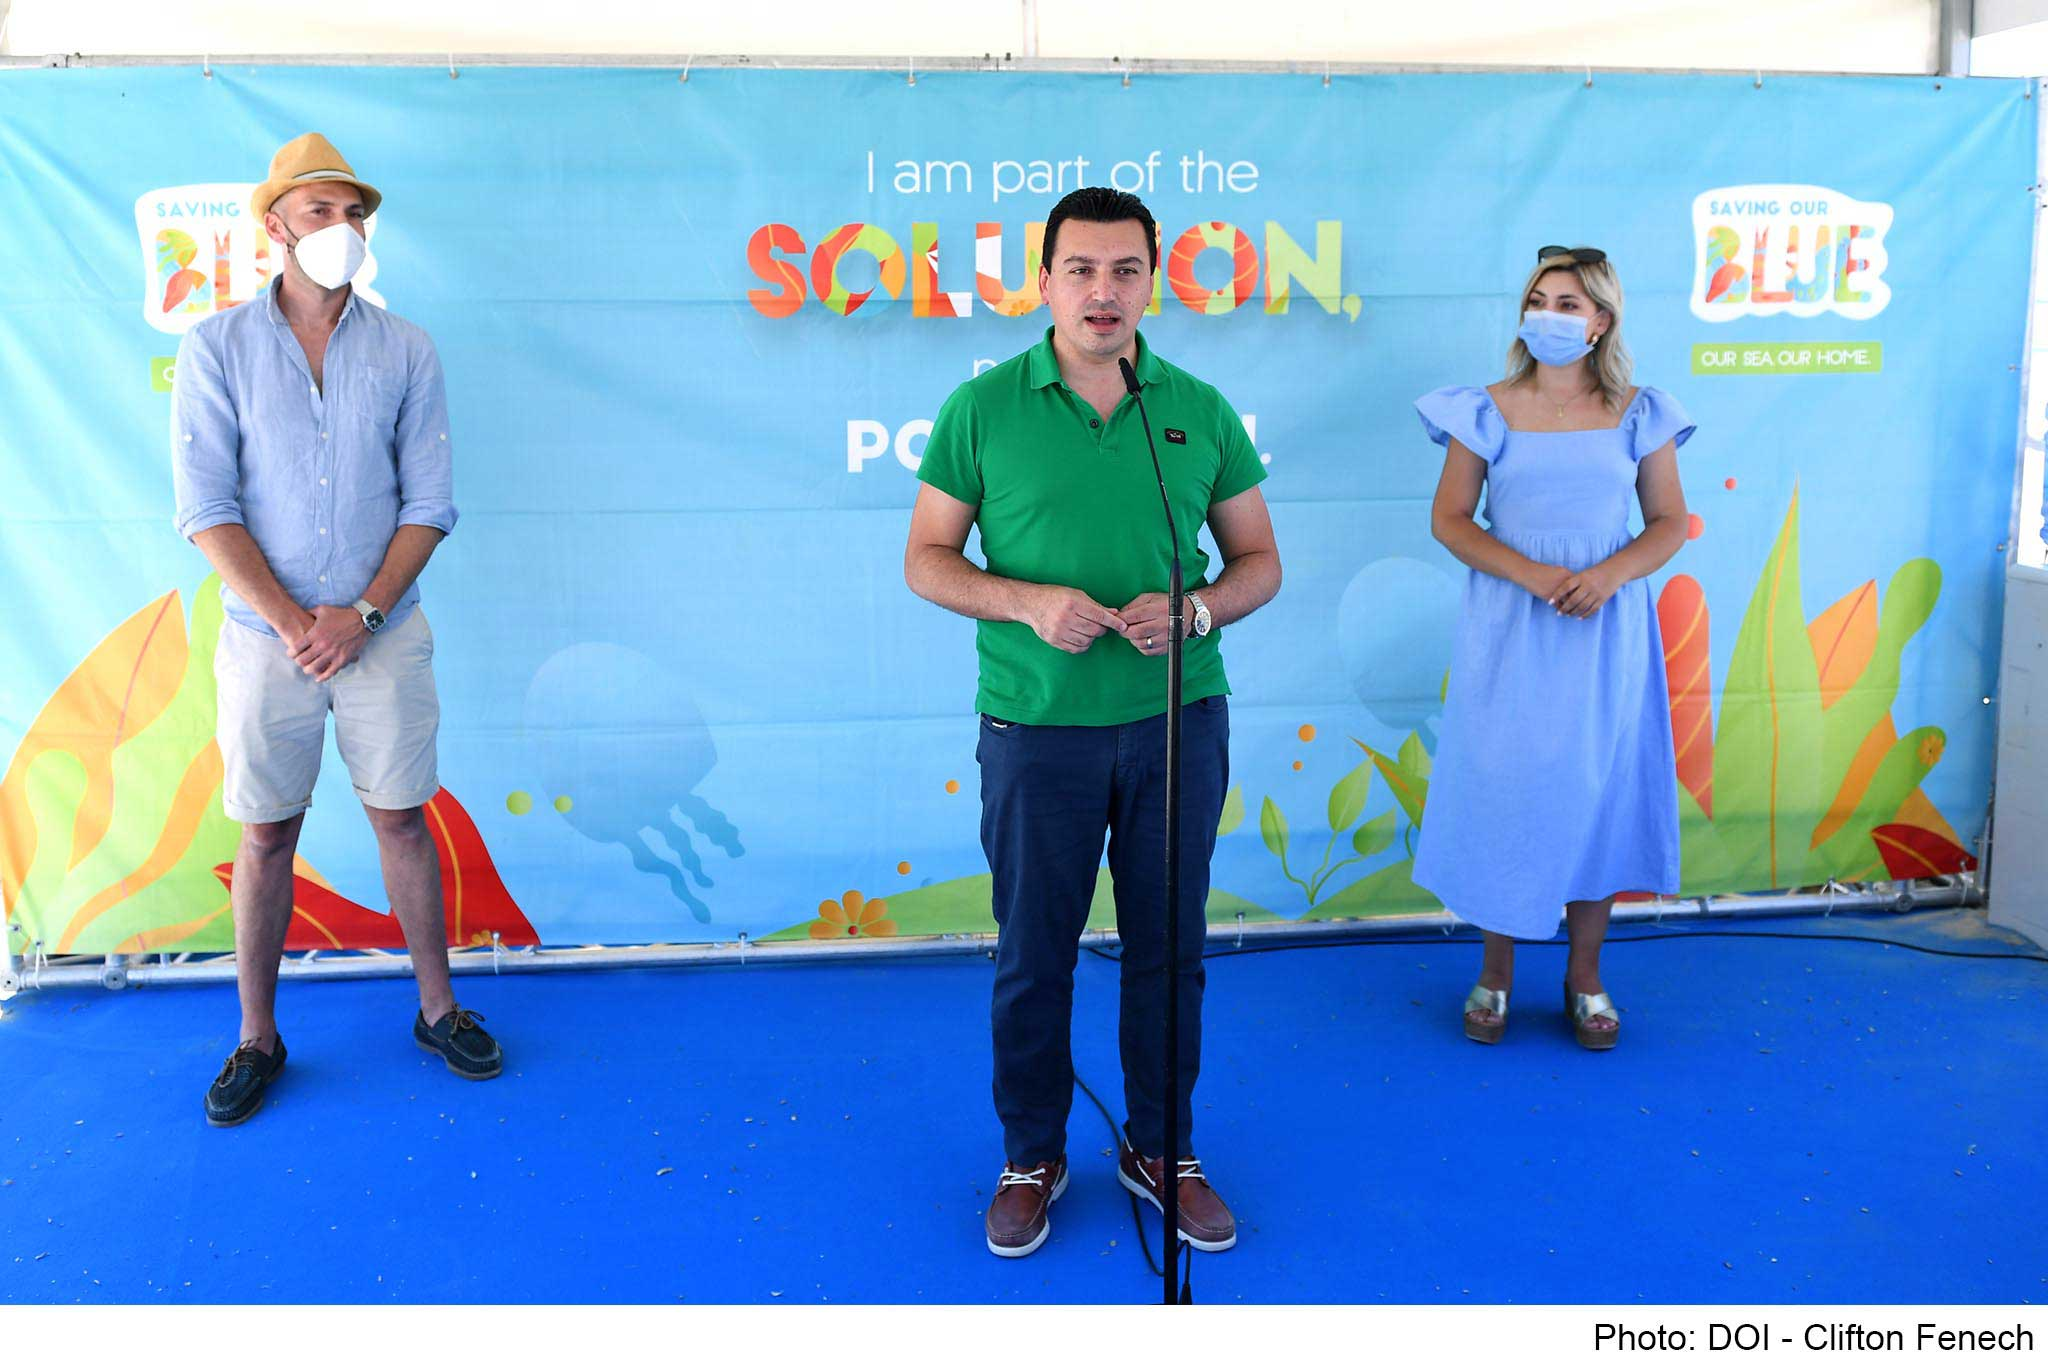 Campaign on marine protection launched